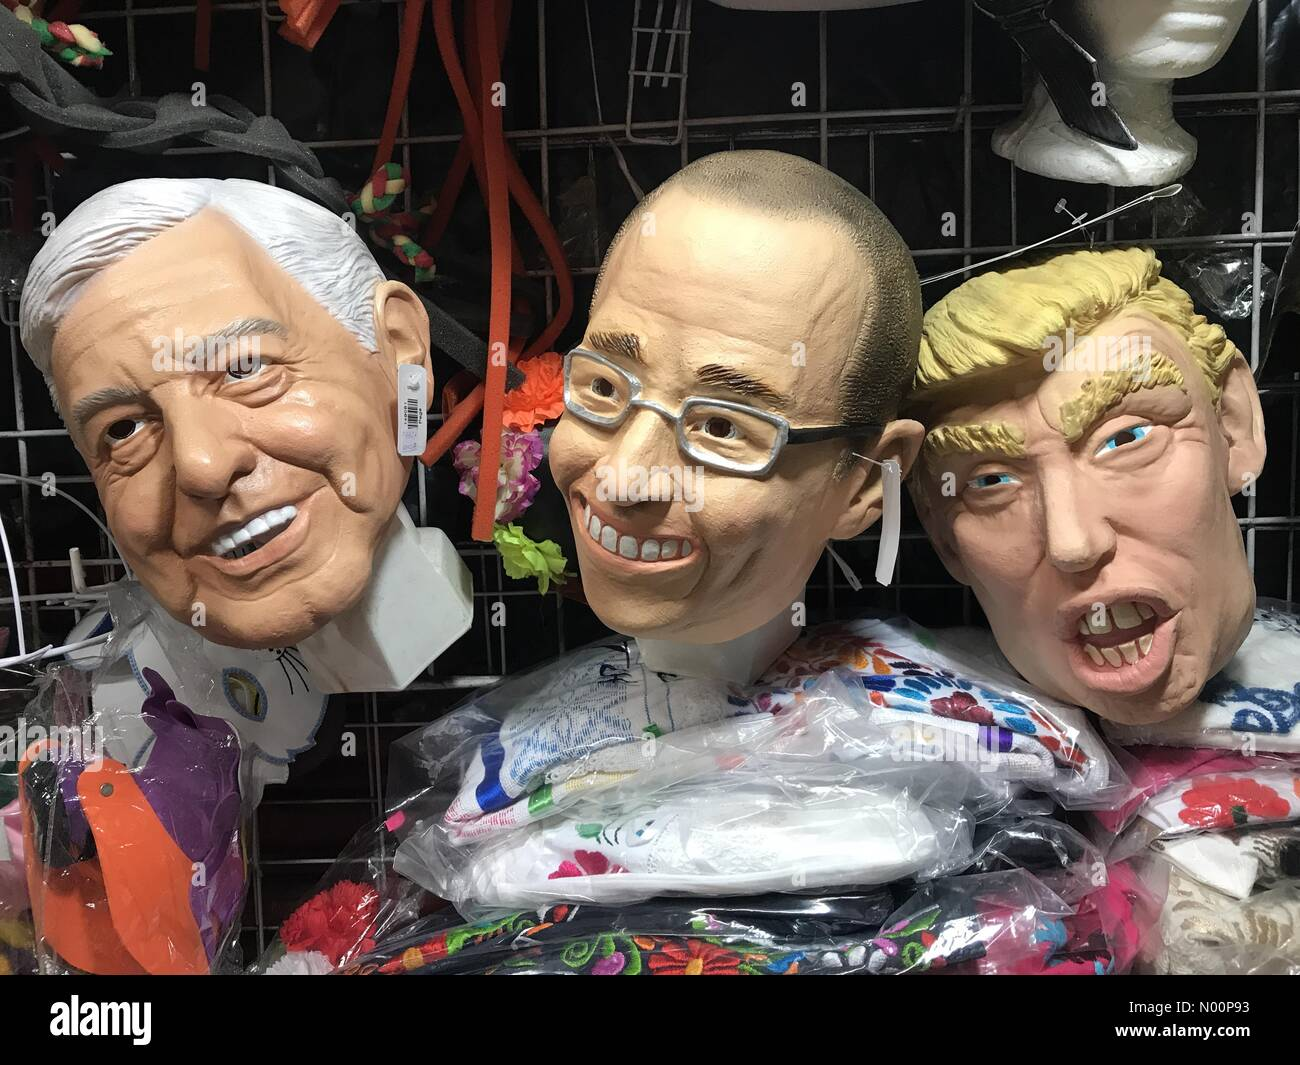 Mexico. 8th May 2018. Masks of Mexican presidential candidates Andres Manuel Lopez Obrador (AMLO) from Morena party, left, Ricardo Anaya Cortes, from PAN party and United States President Donald Trump in a market in Mexico Credit: Chico Sanchez/StockimoNews/Alamy Live News Stock Photo